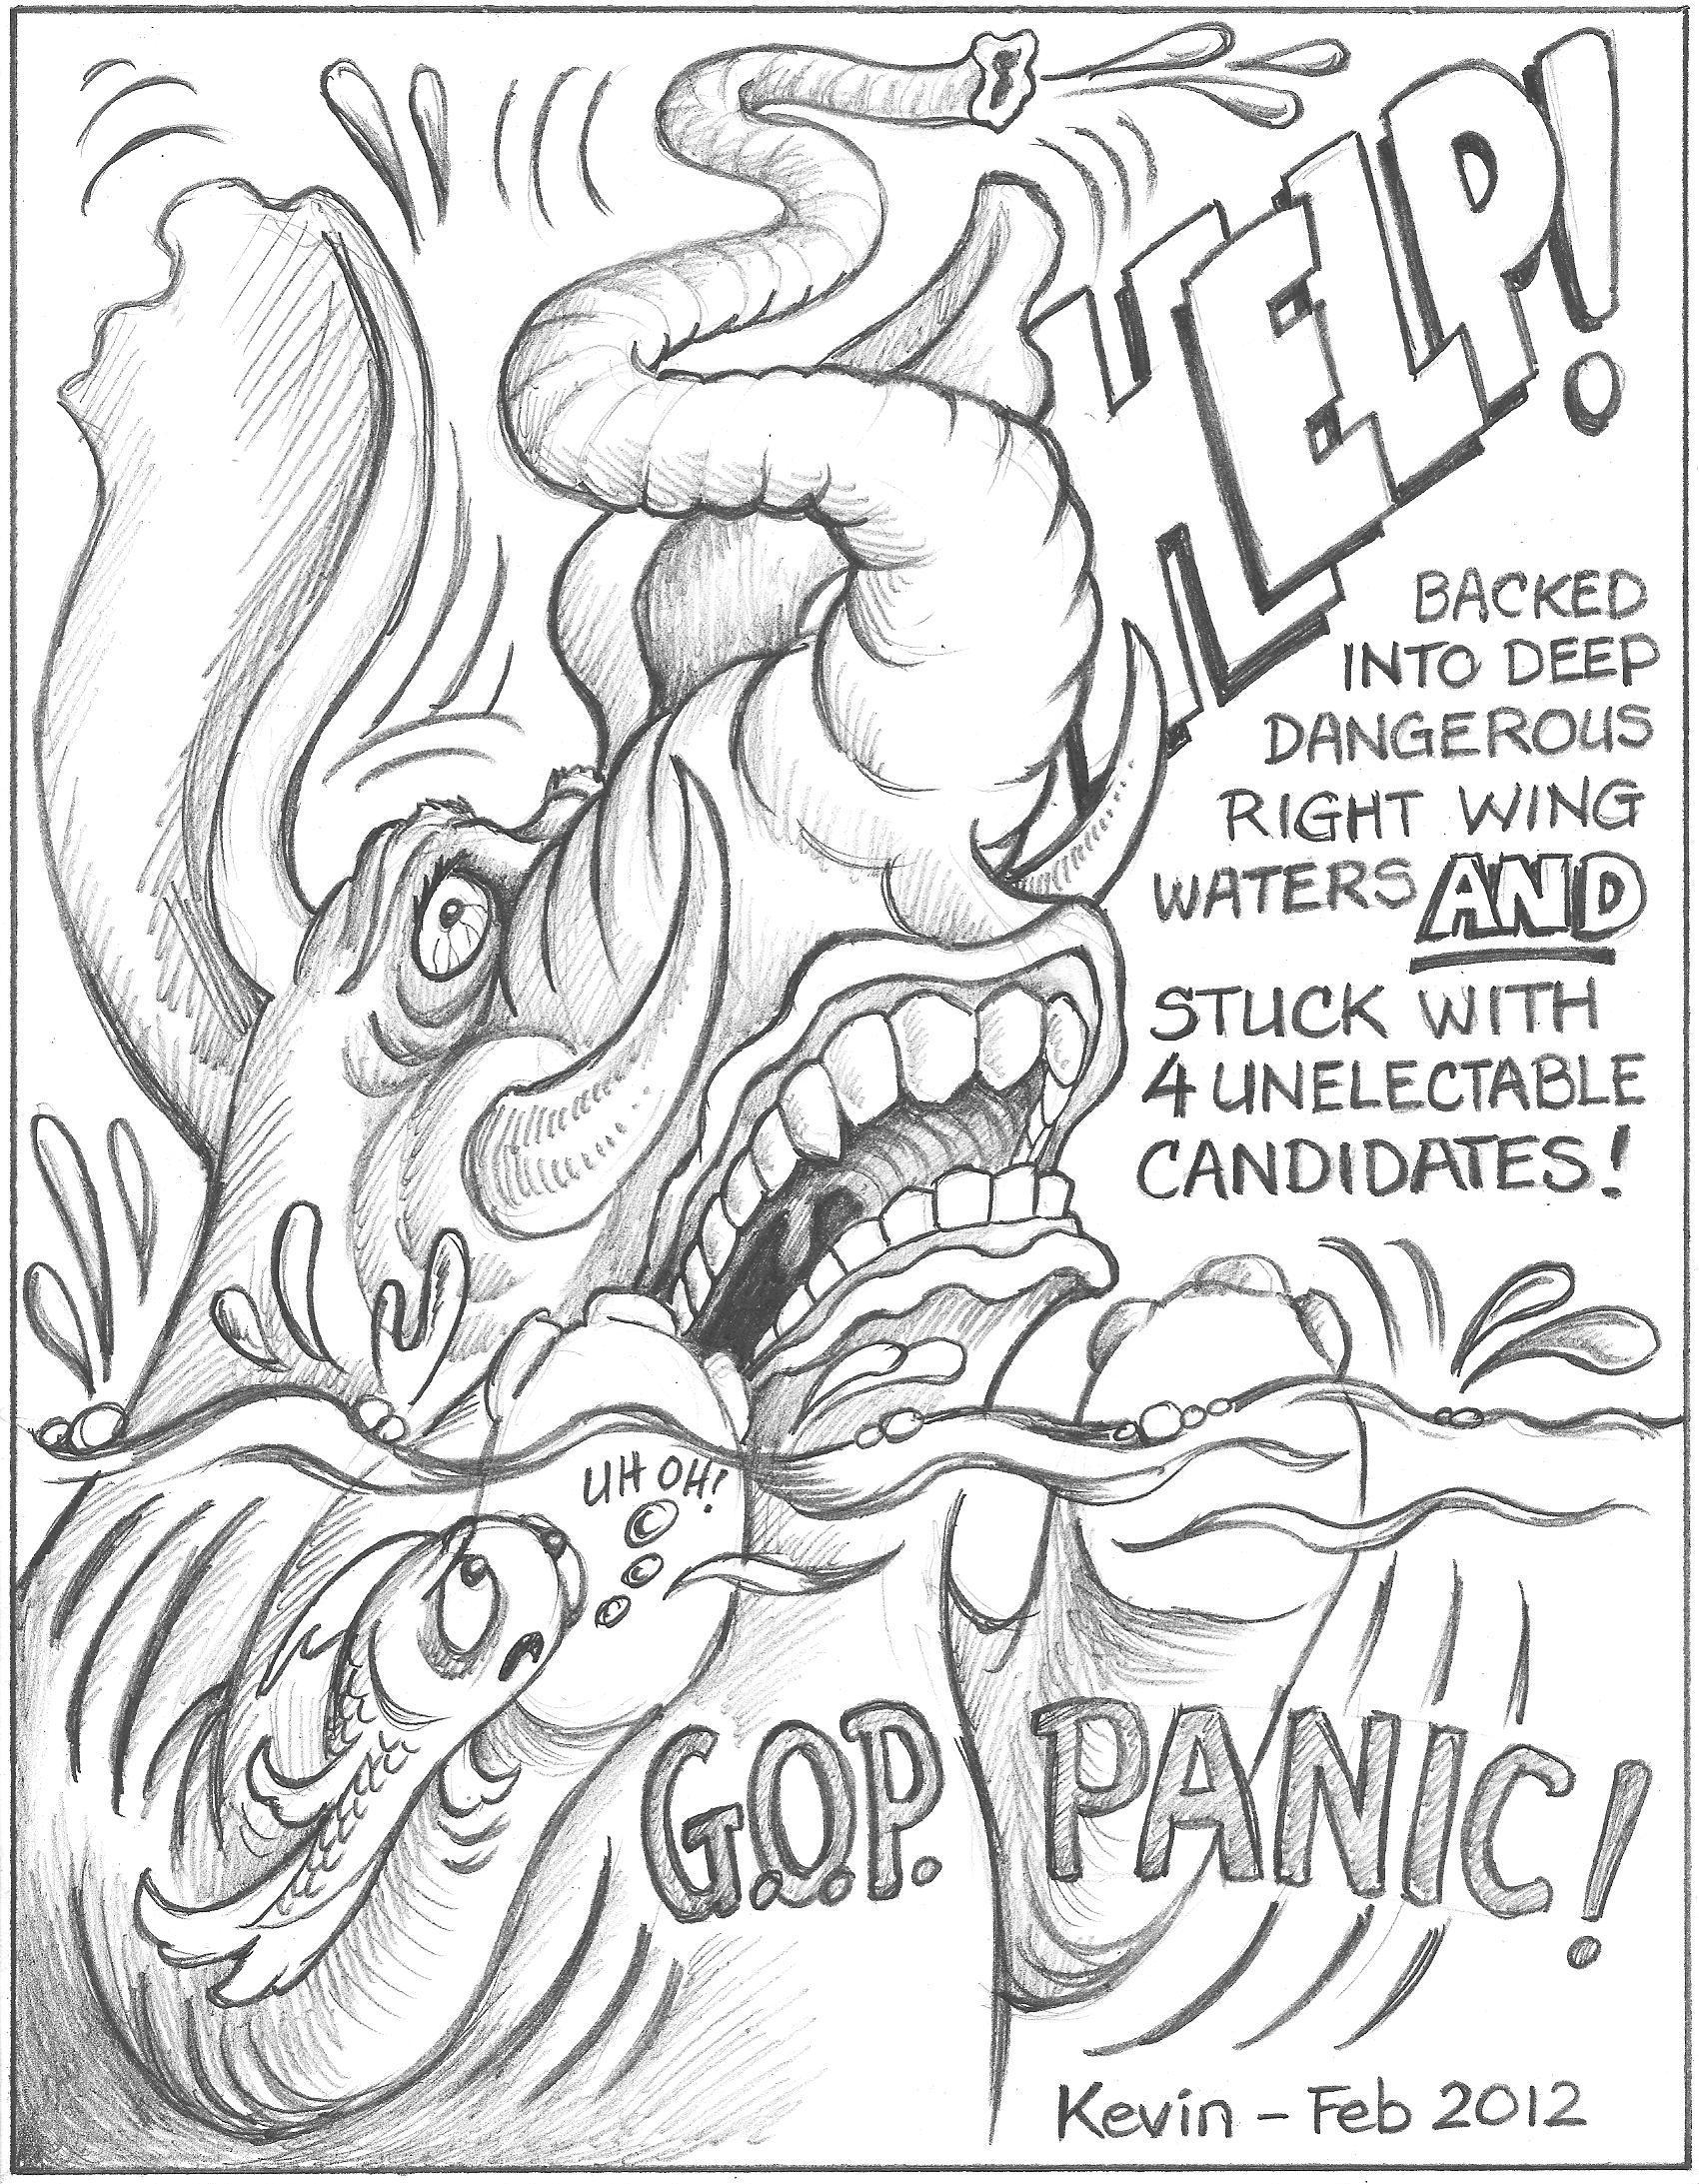 ol gop panic cartoon feb jpg cb education grad school essays samples